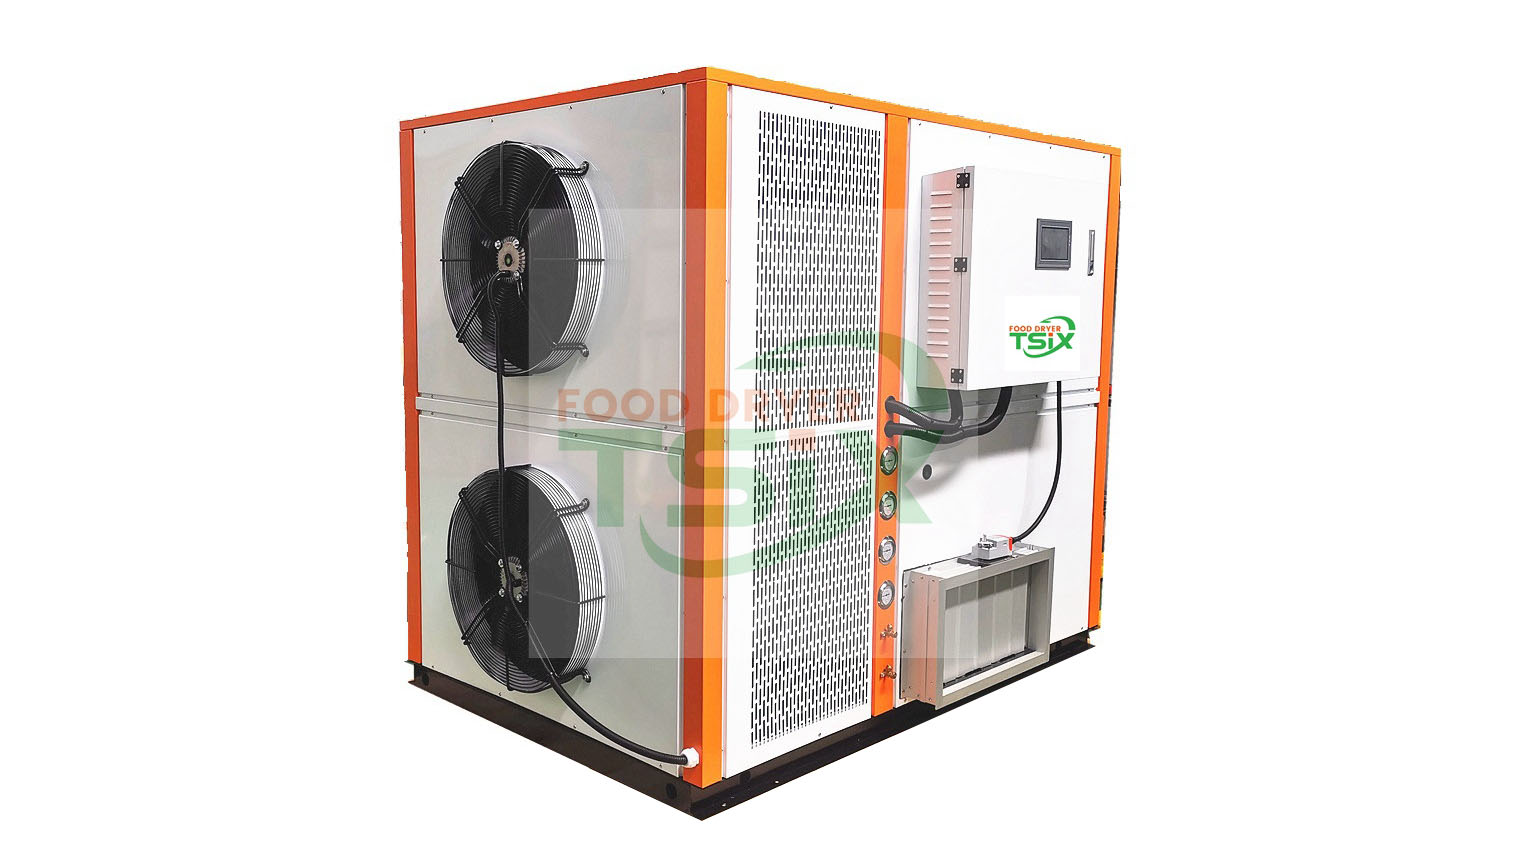 300kg Hot Air Vegetable Dehydrator to Dehydrate Carrot Chilli Tomatto Broccoli DPHG050S-G manufacturers-Twesix